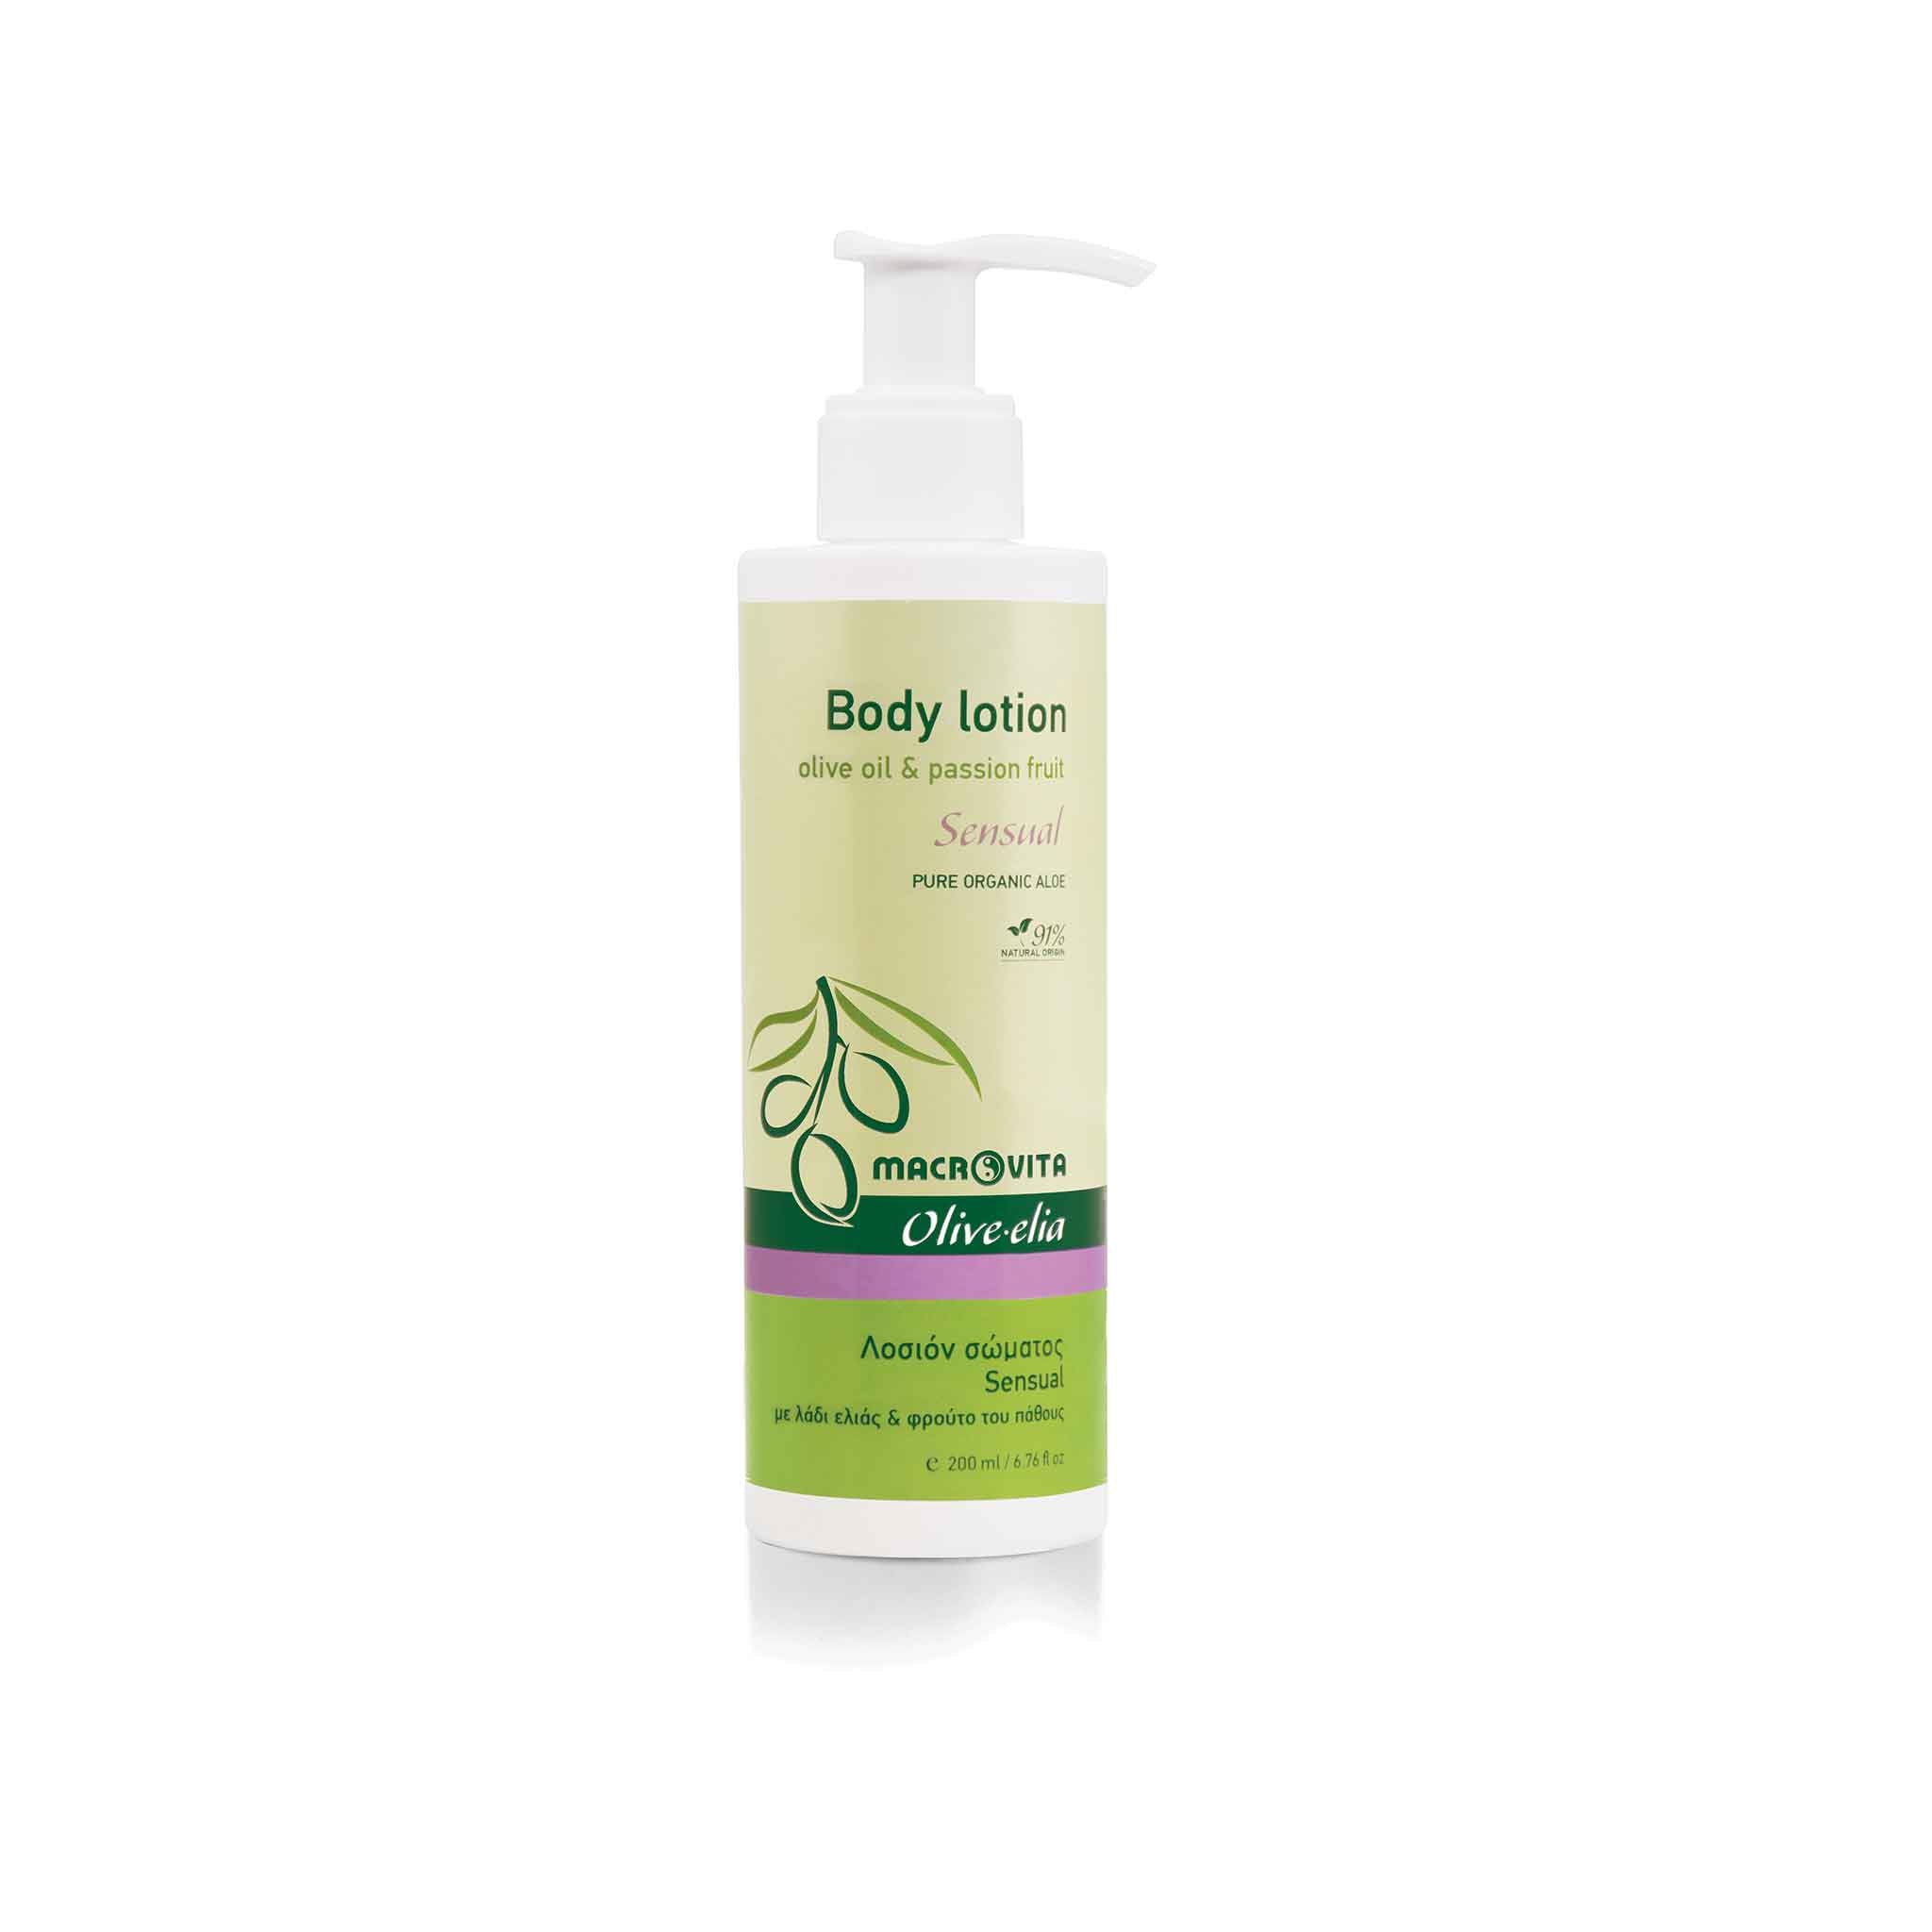 OLIVELIA BODY LOTION SENSUAL